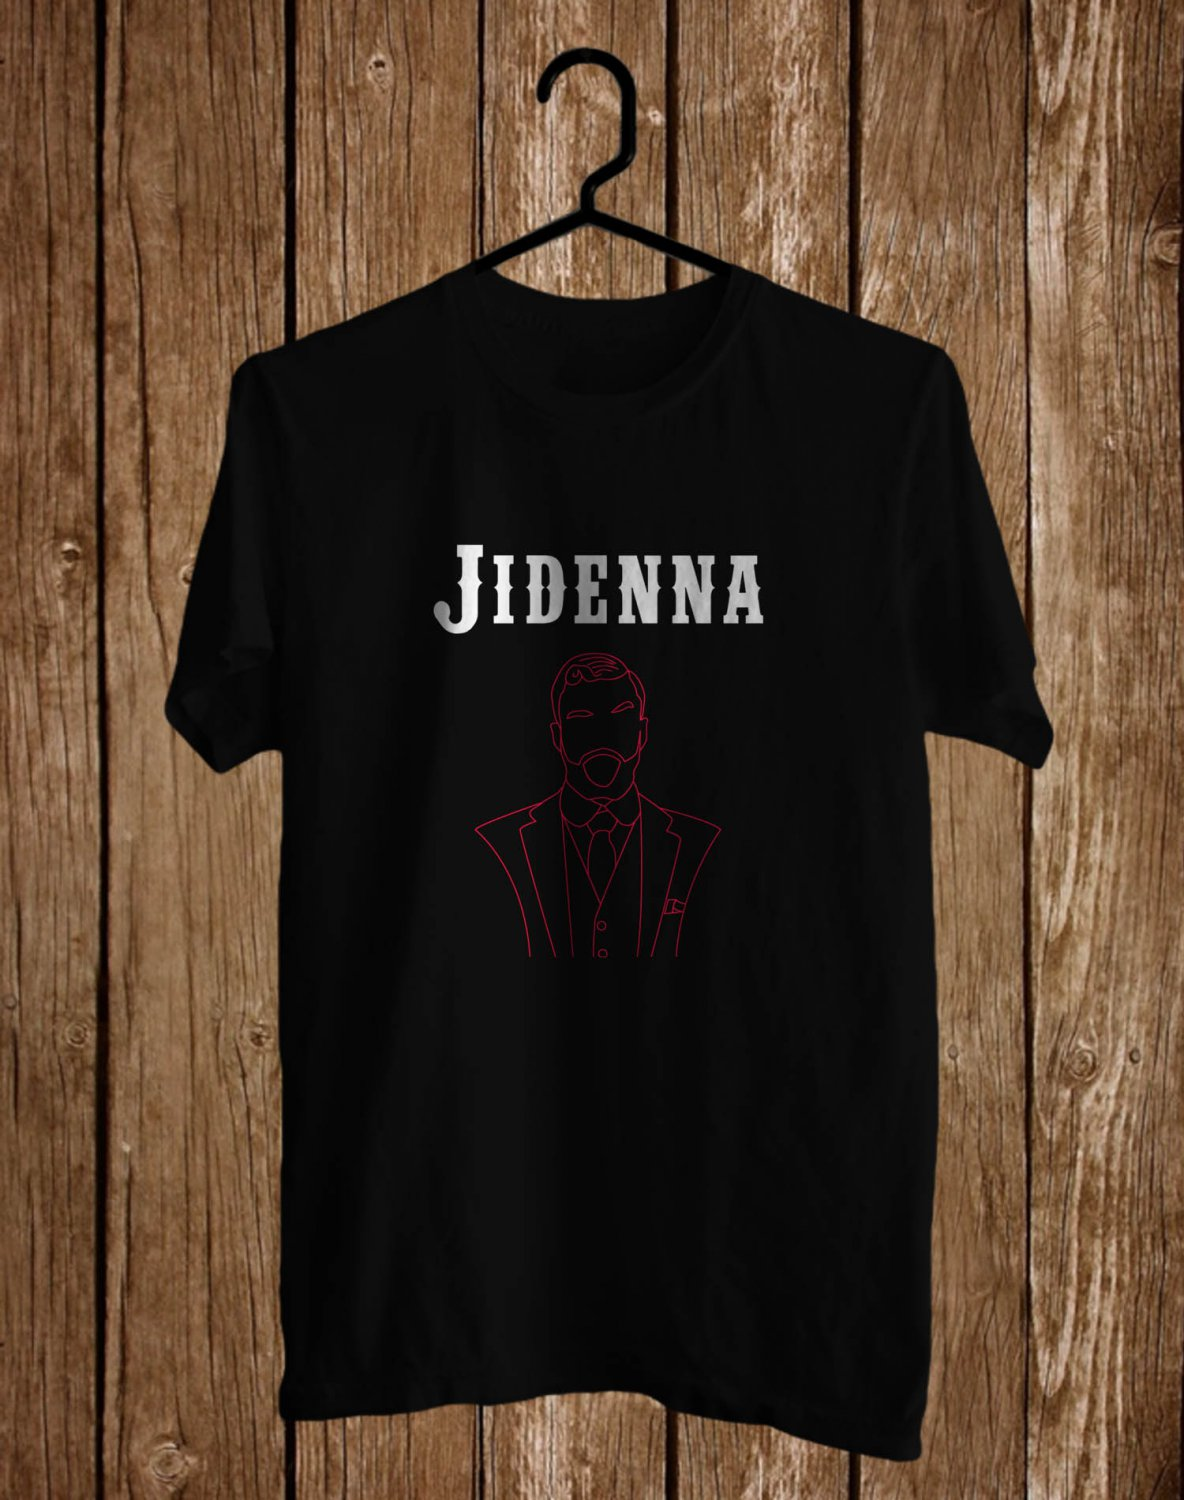 Jidenna The Chief logo Black Tee's Front Side by Complexart z1